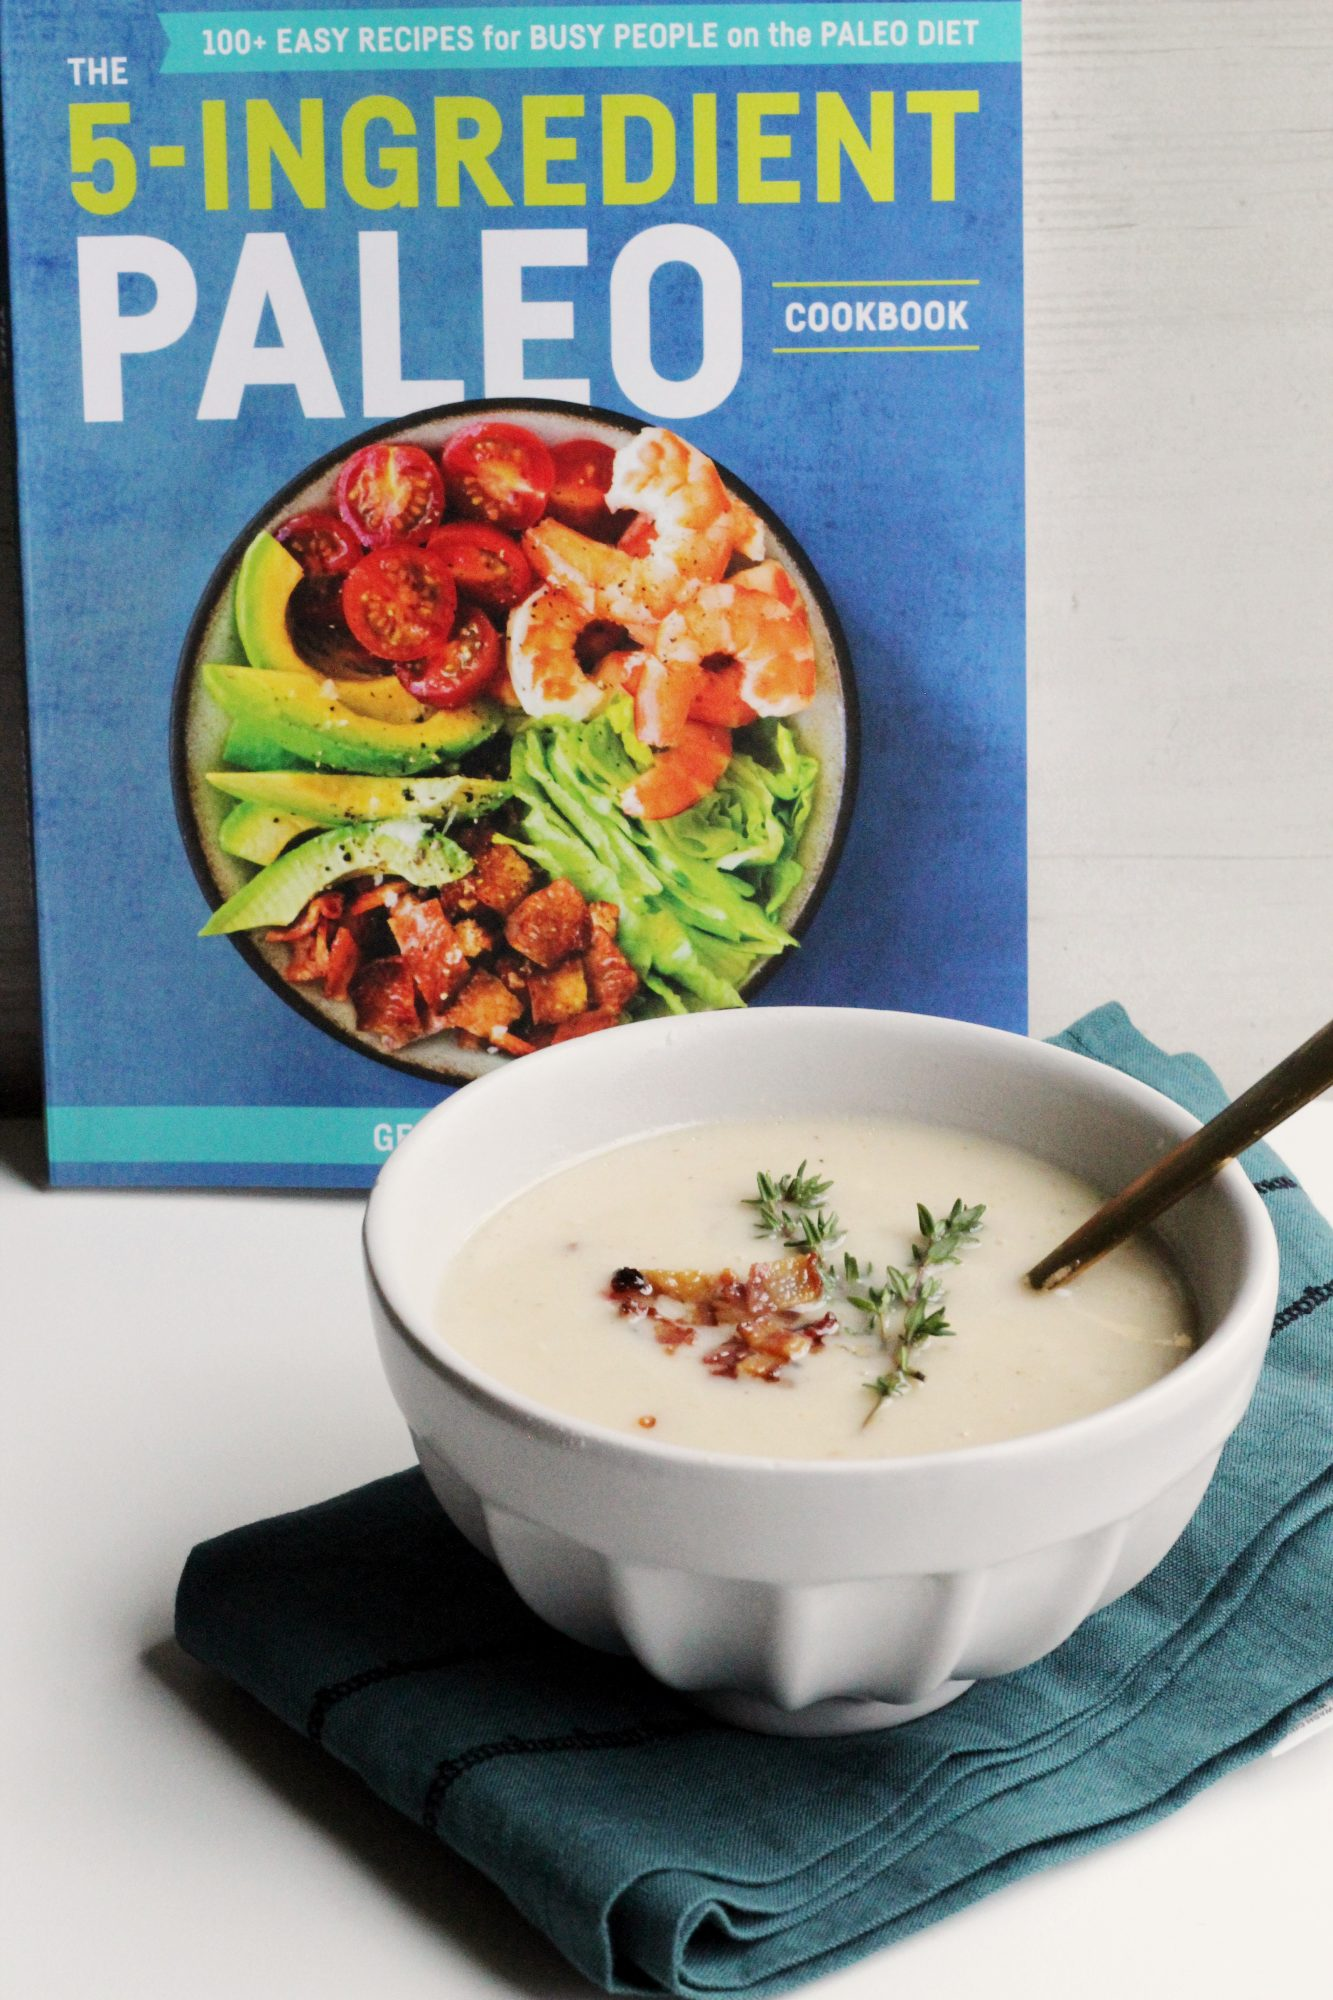 Roasted Cauliflower Soup with Bacon (Paleo)